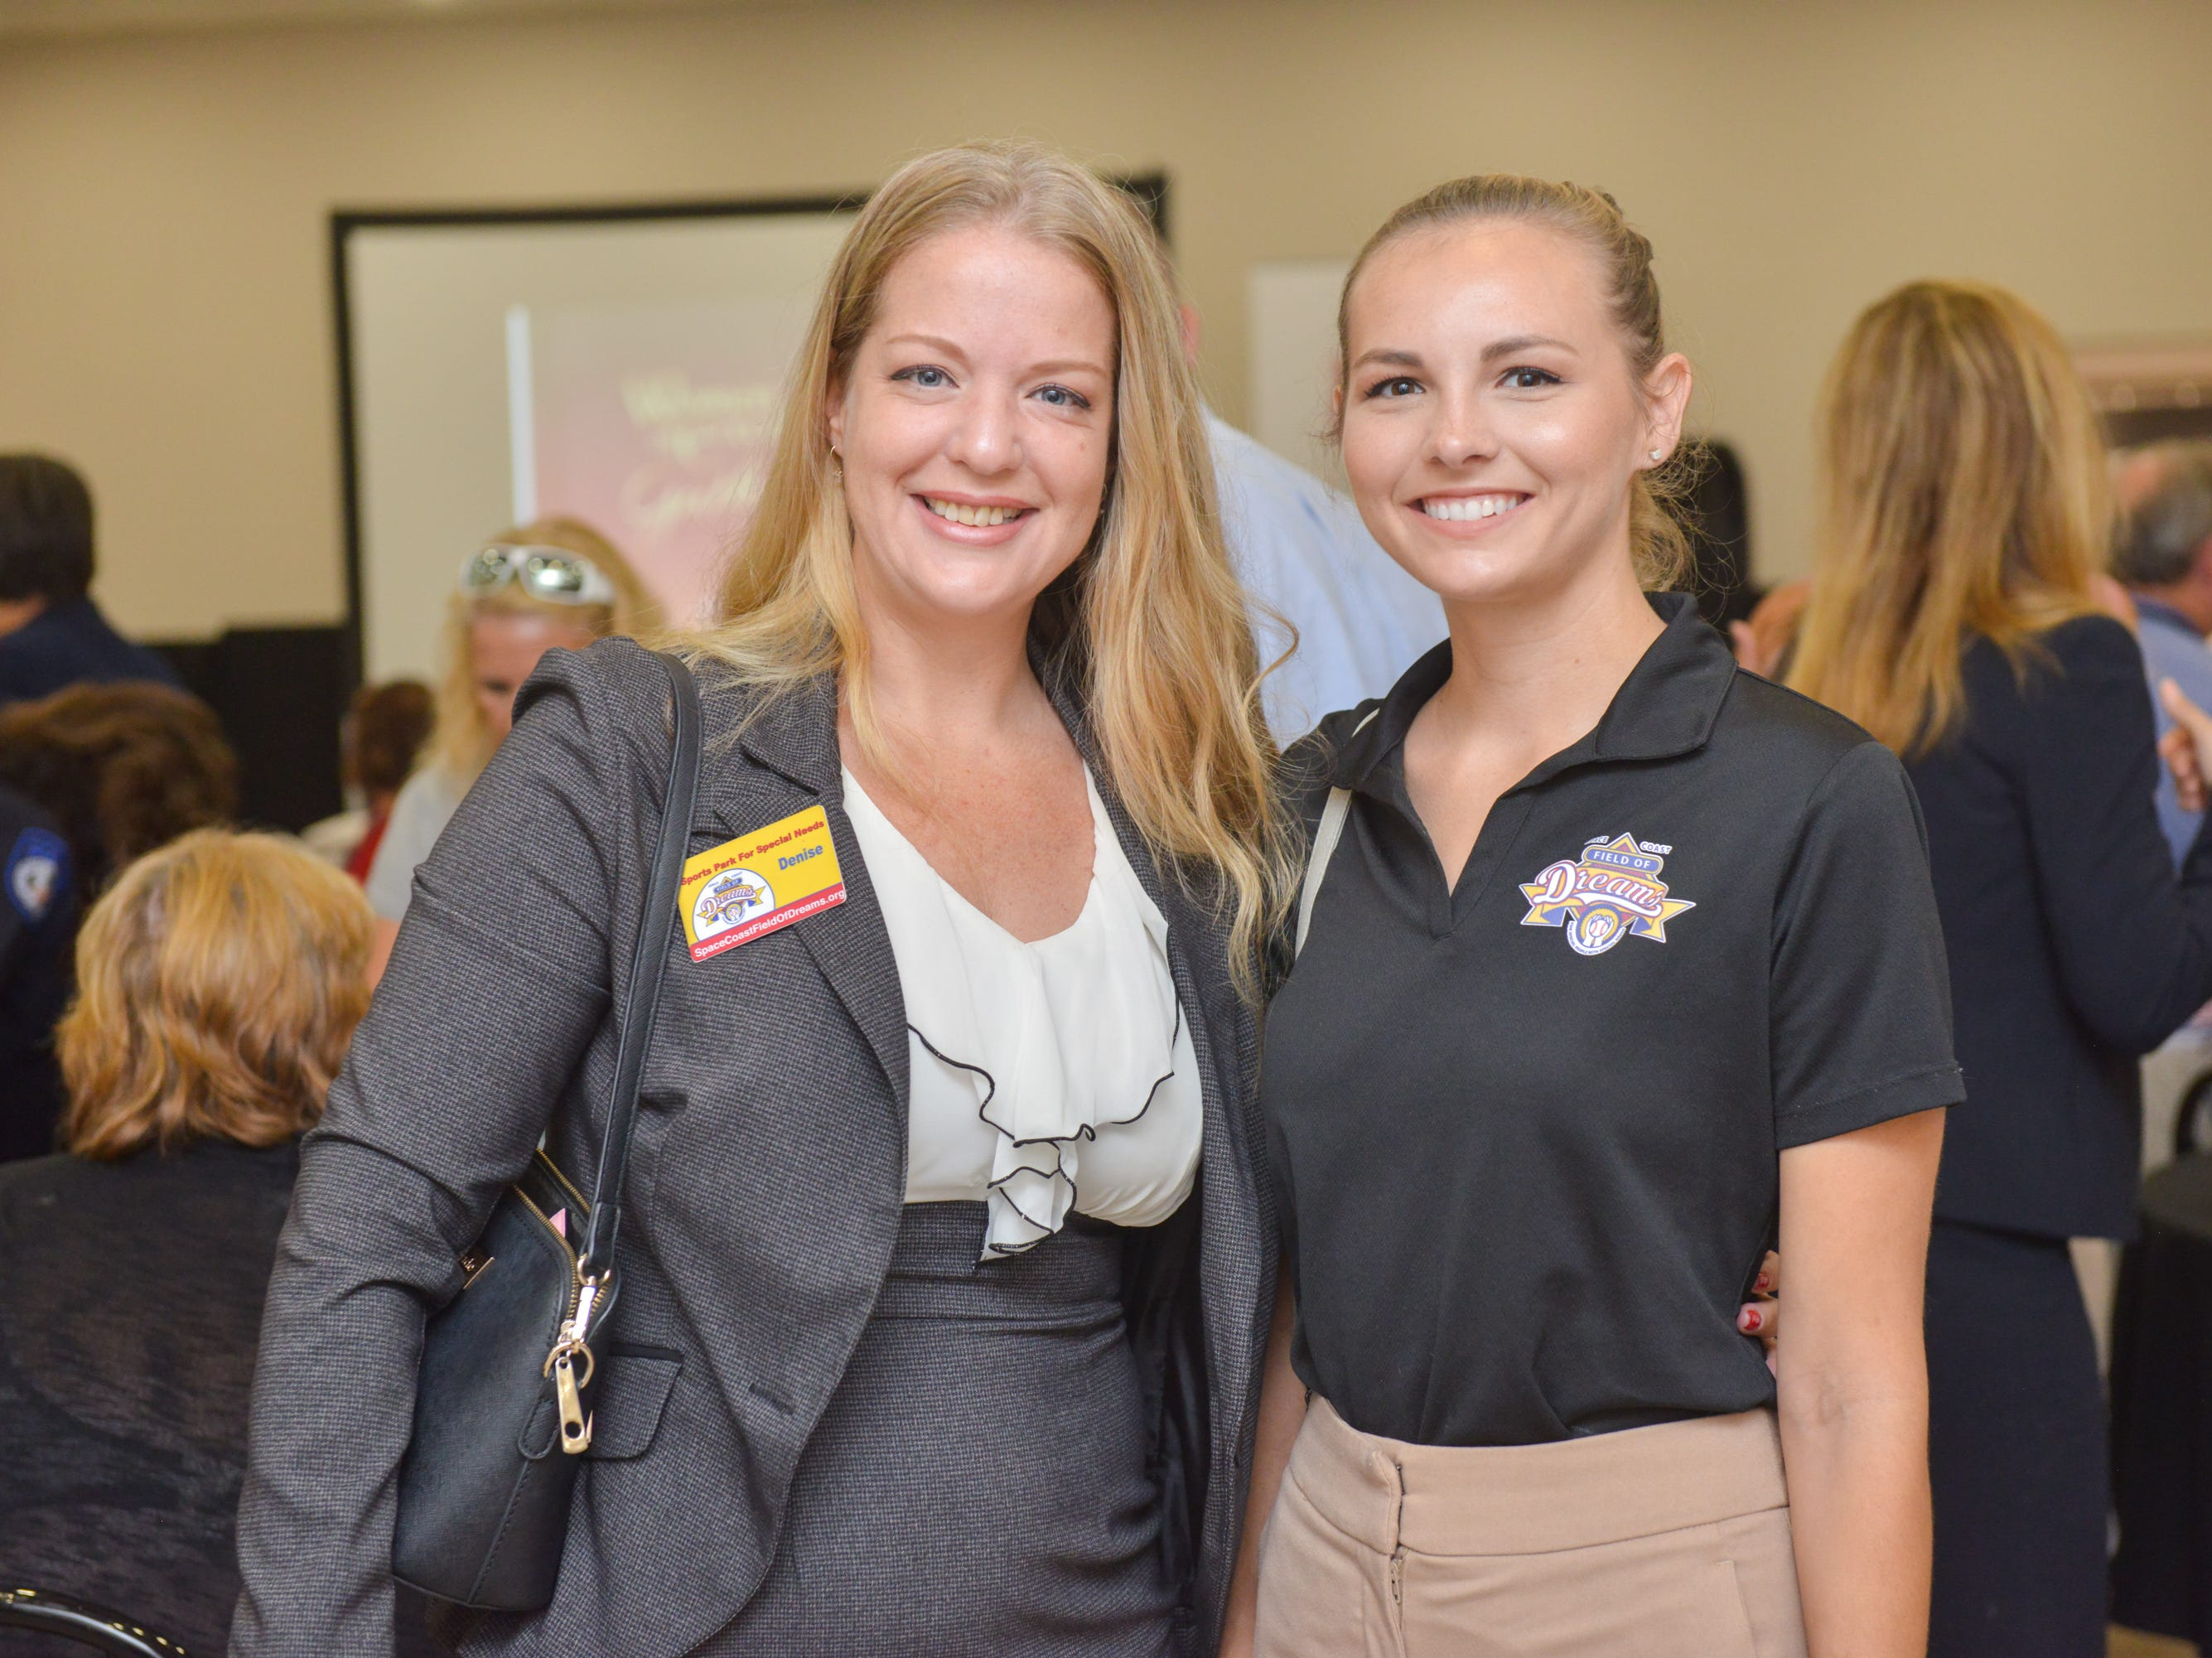 Denise Brockway and Alie Hunt during the Women of Excellence Gathering at Promise in Brevard sponsored by the Melbourne Regional Chamber.